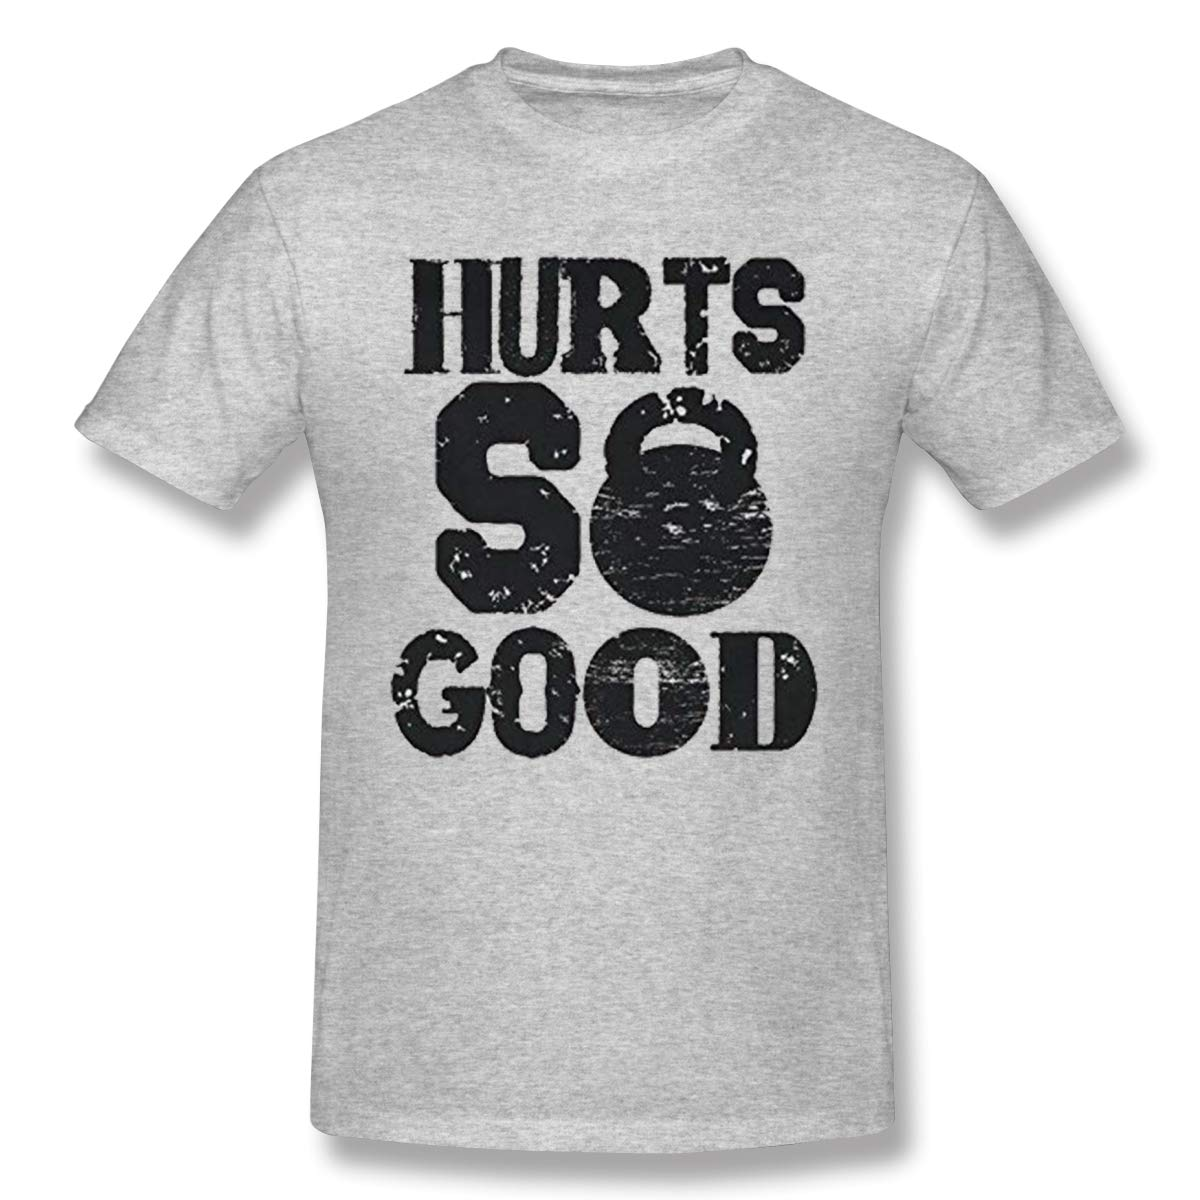 Perfectmeet S Hurts So Good Workout Gym Tshirt